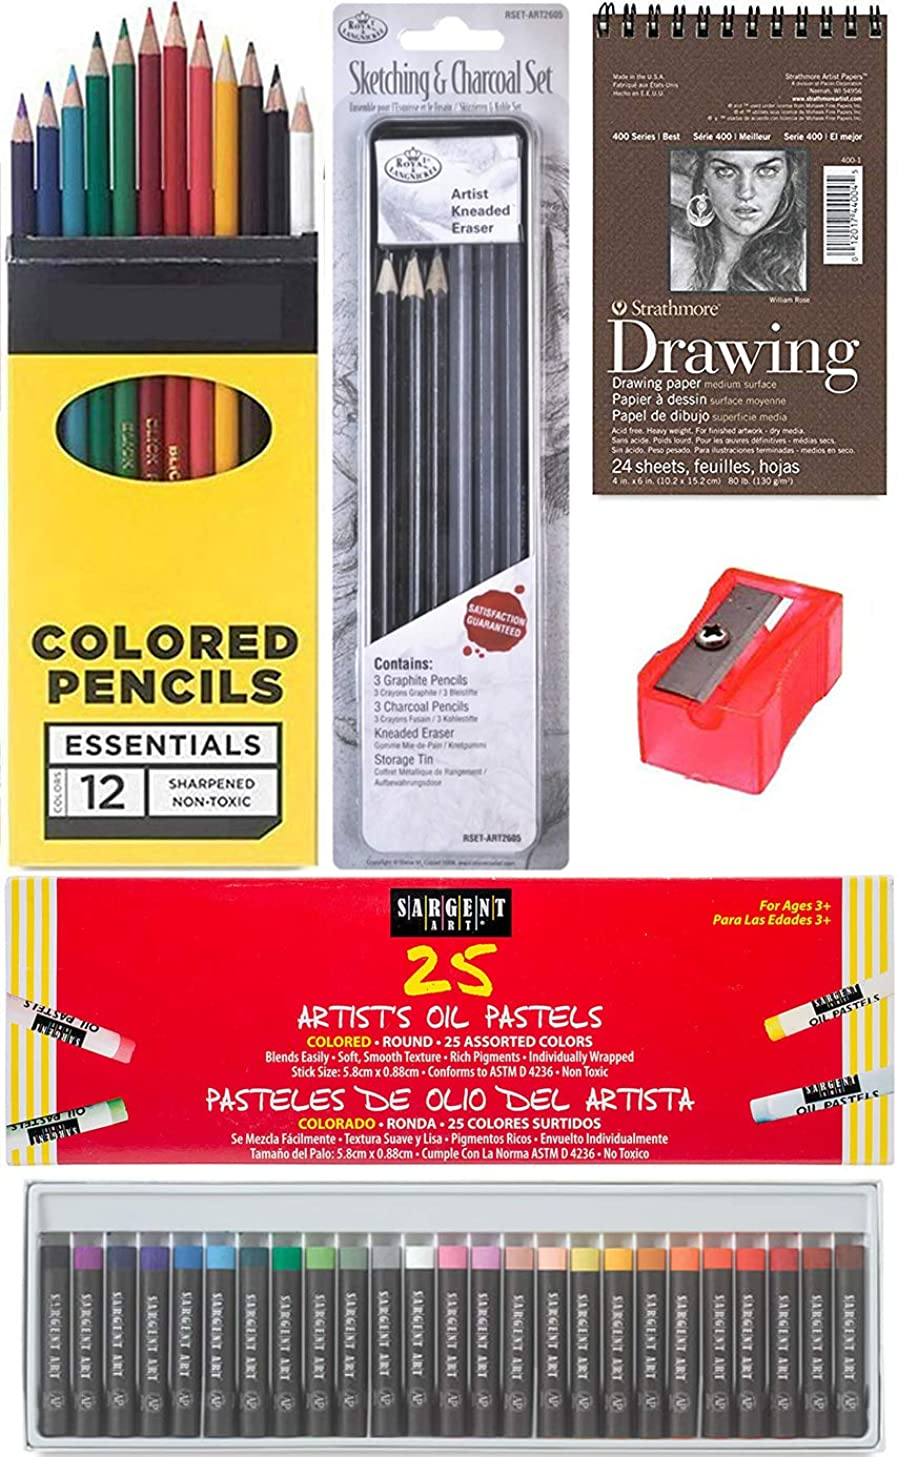 Color & Charcoal & Pastels Drawing Studio Sketching Pack/Colored Pencils Box/Eraser/Pad/Graphite / 25 Oil Colors + Sharpener Artist tin Creative Bundle